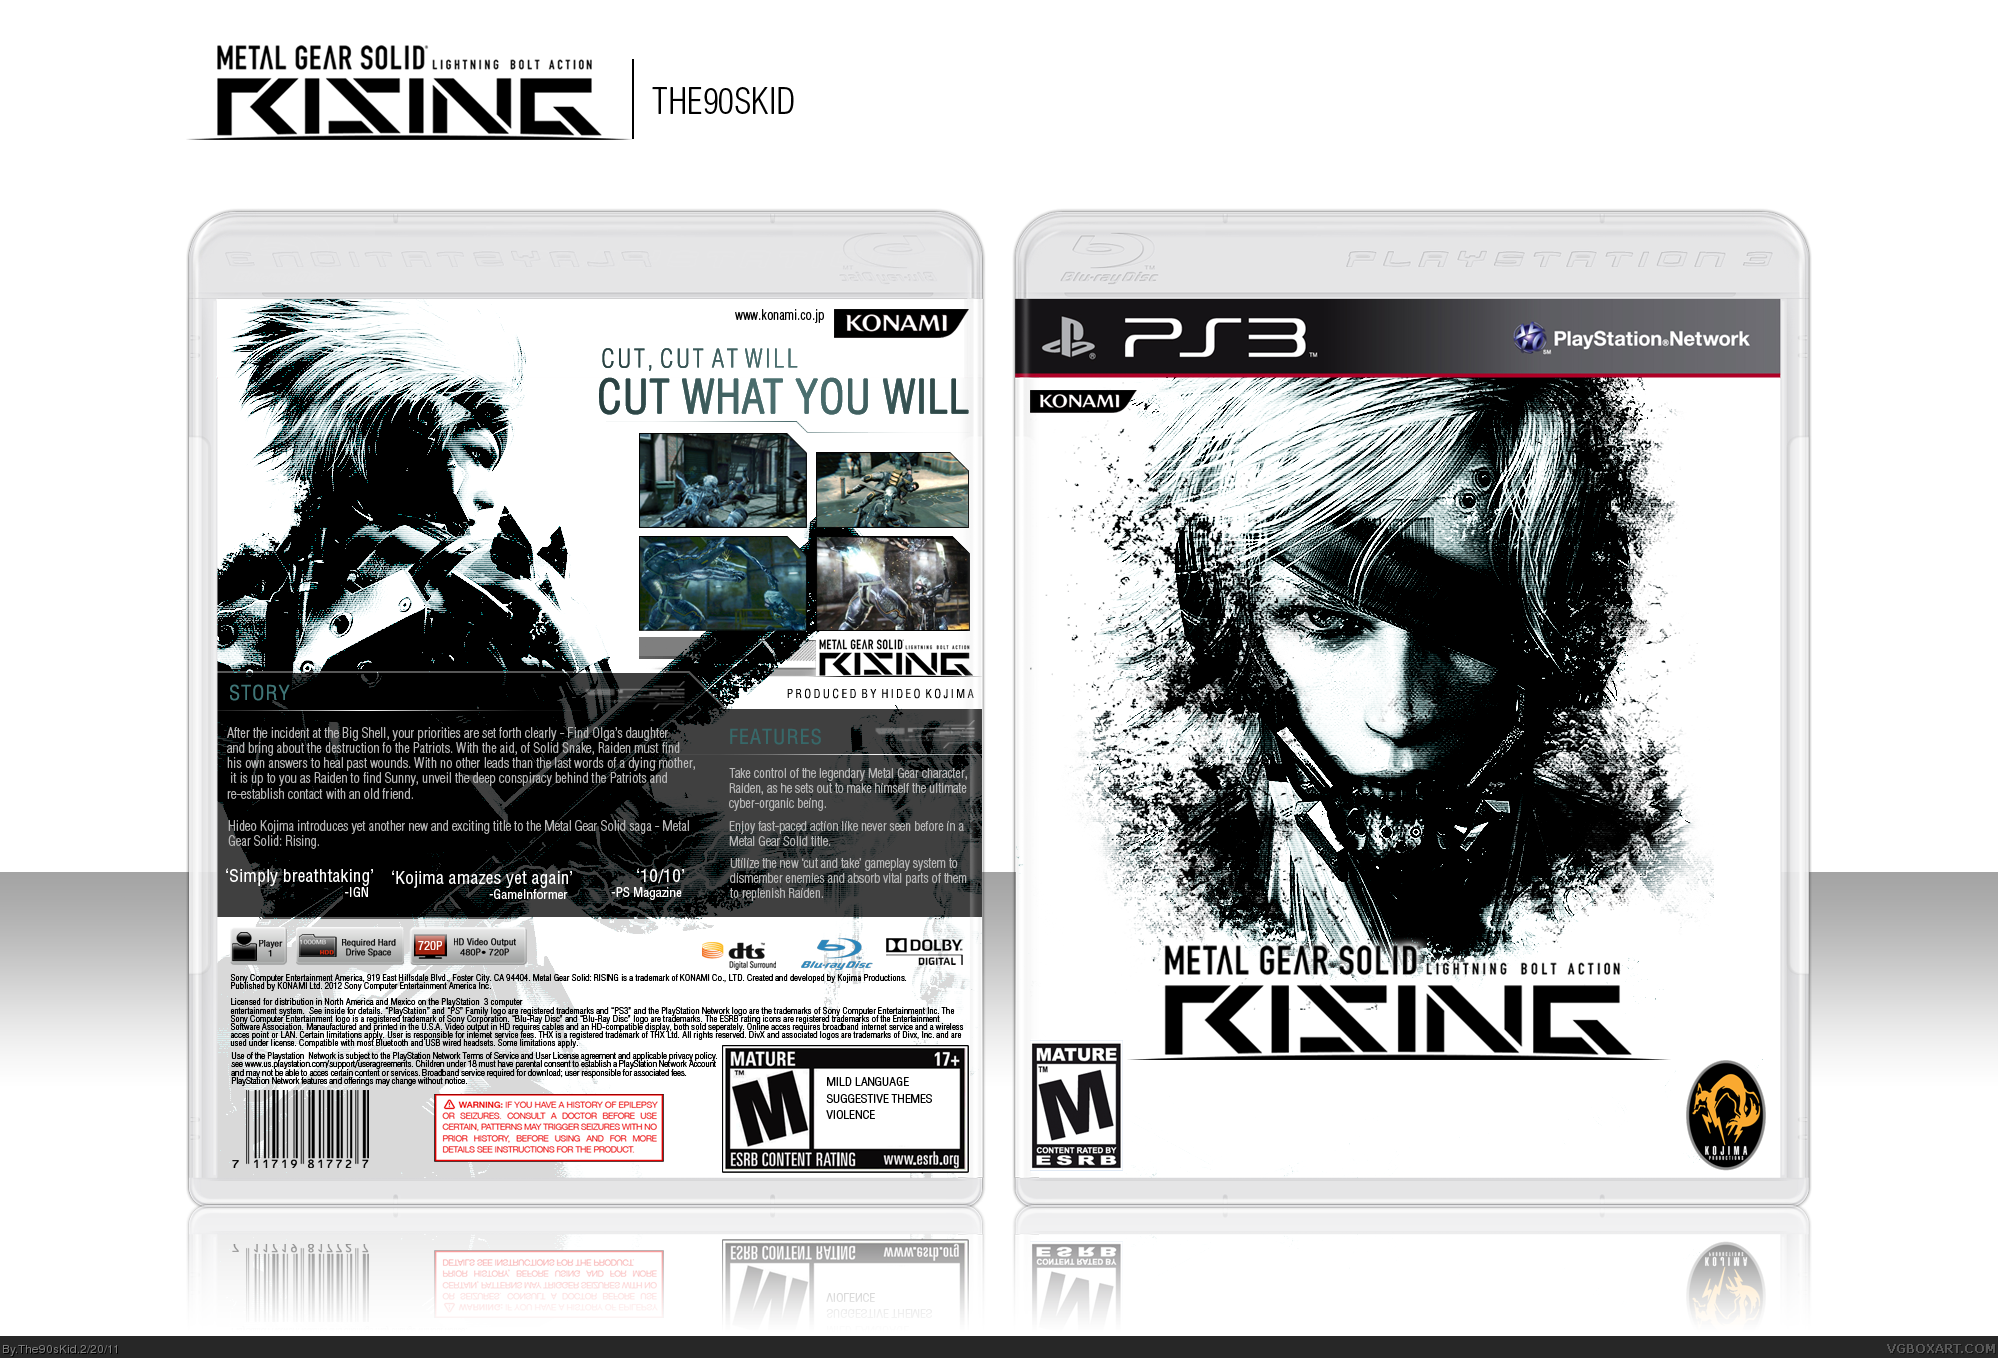 Metal Gear Solid: Rising box cover